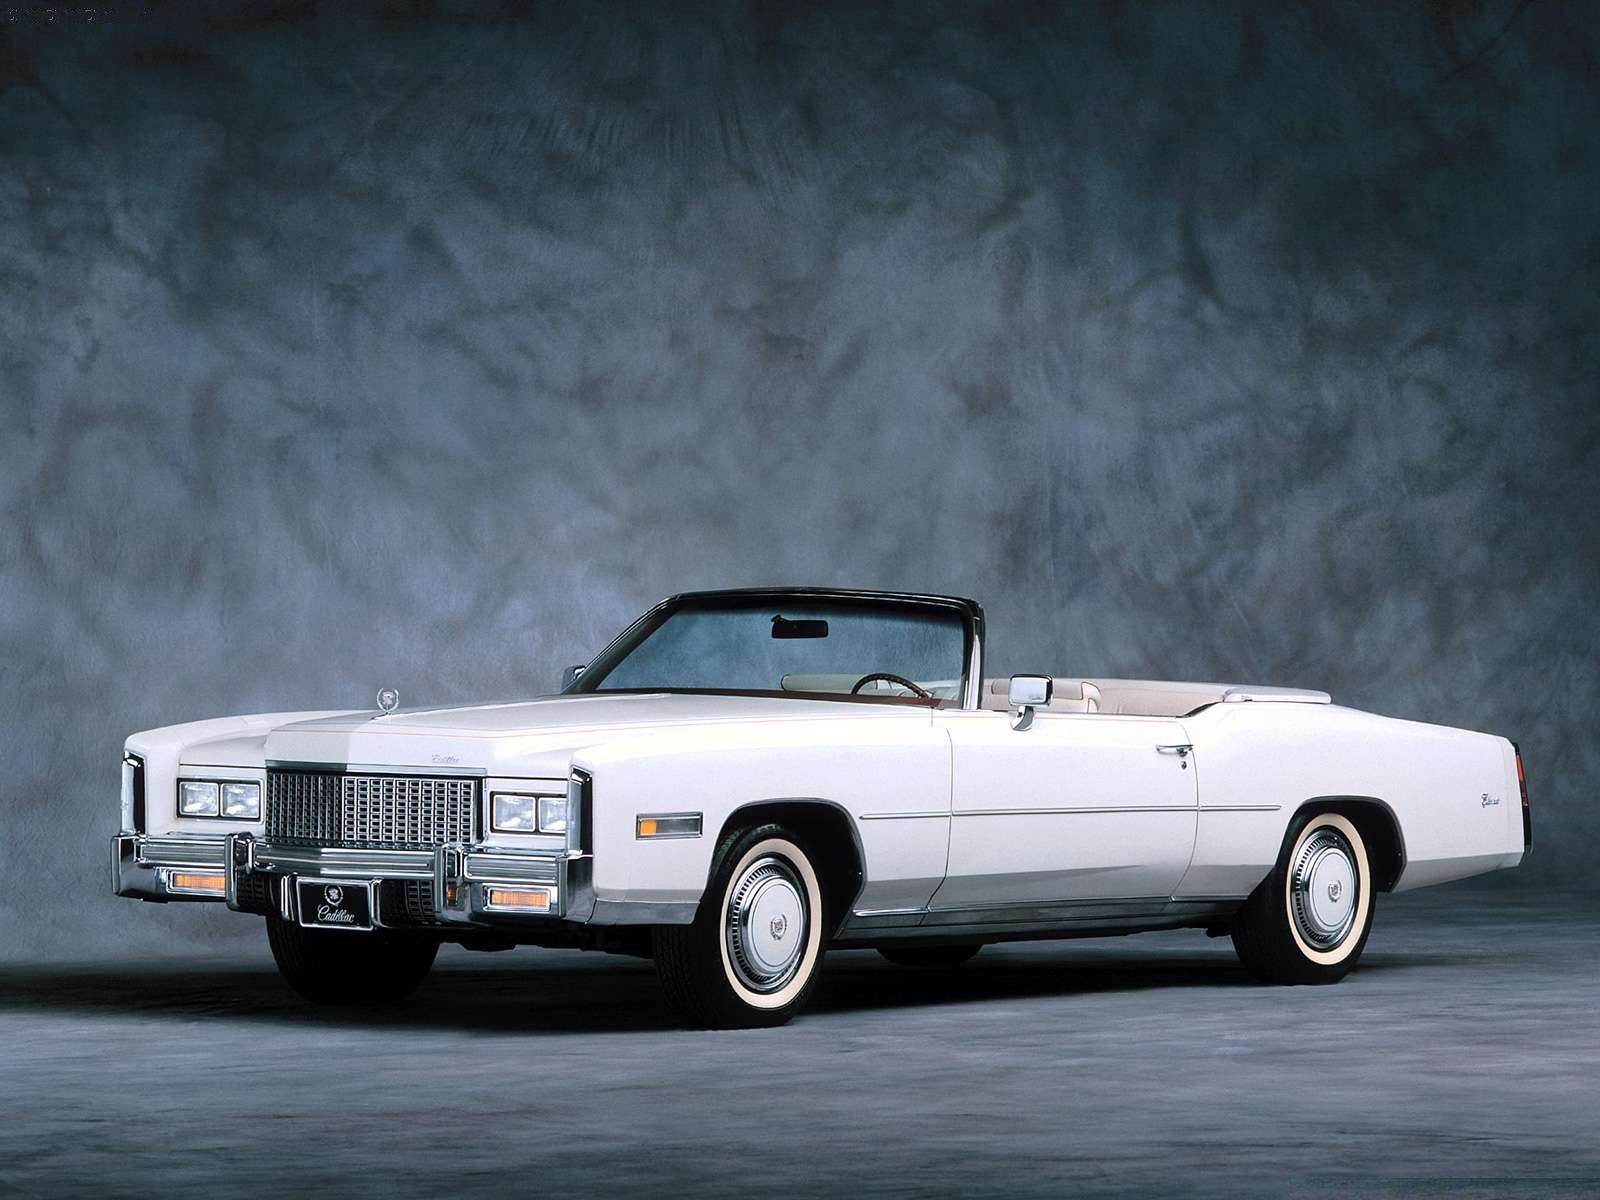 Classic Cadillac Eldorado For Sale Online Today http://www.cars-for ...